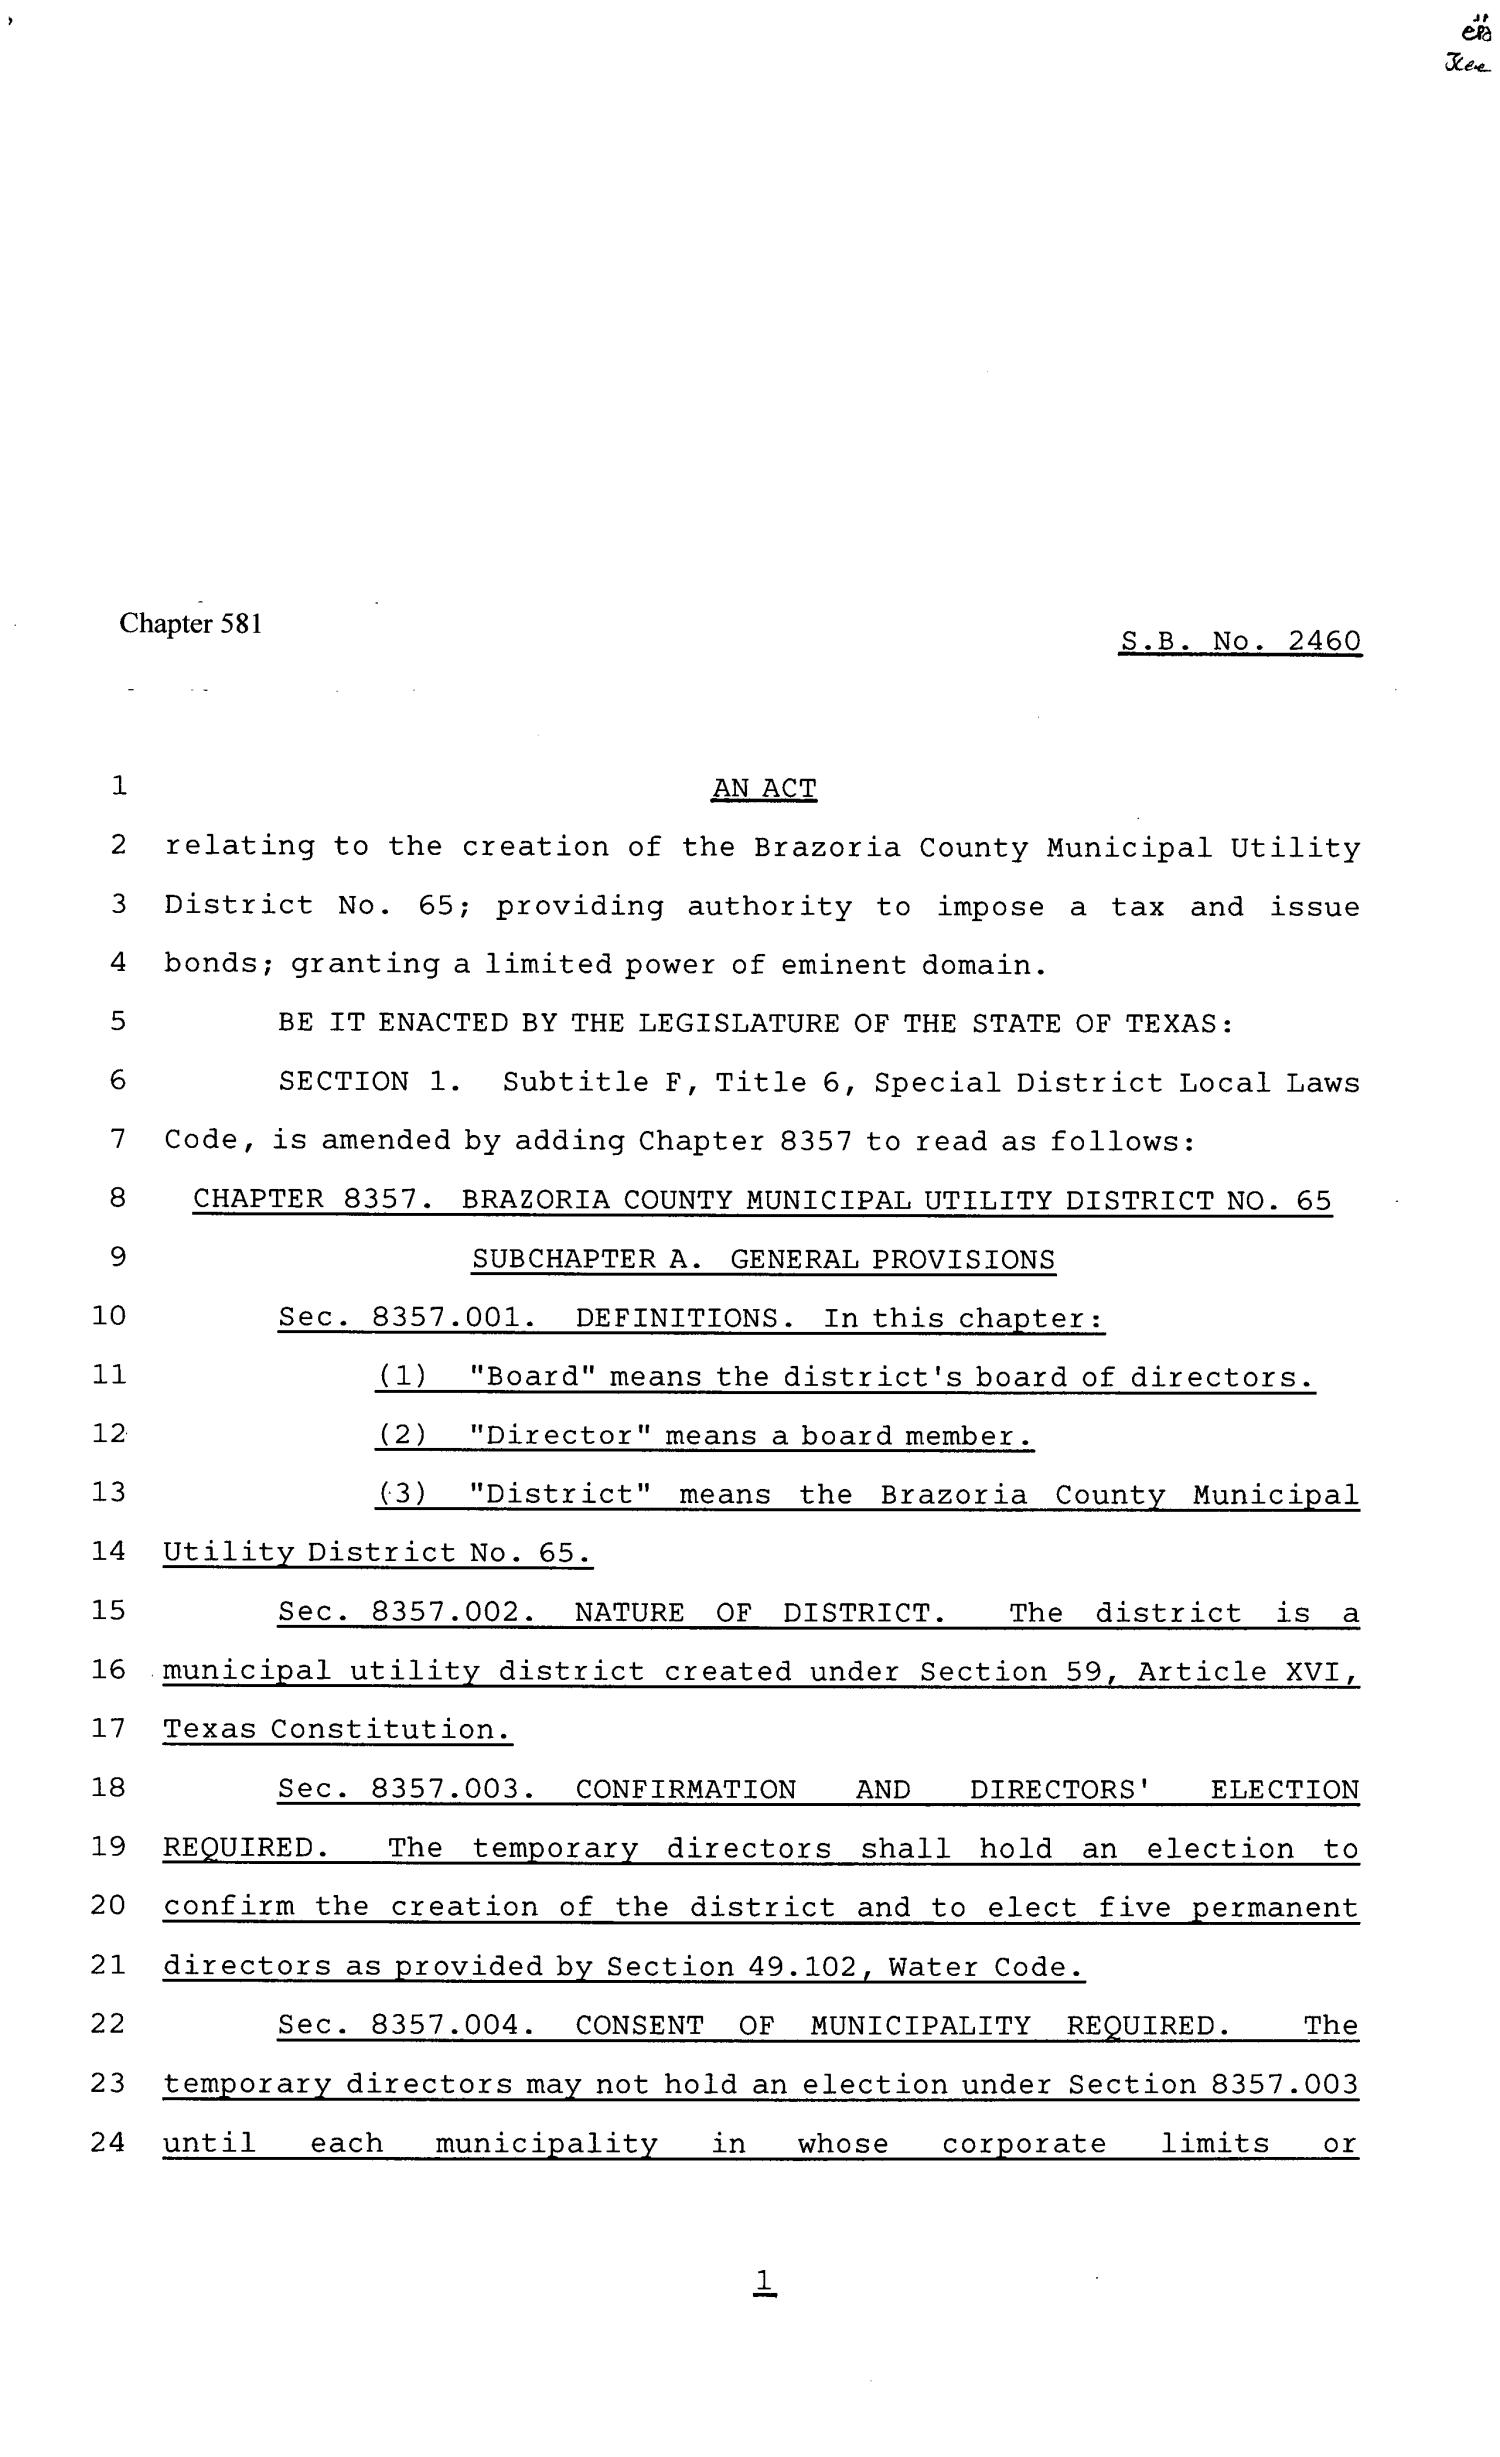 81st Texas Legislature, Senate Bill 2460, Chapter 581                                                                                                      [Sequence #]: 1 of 15